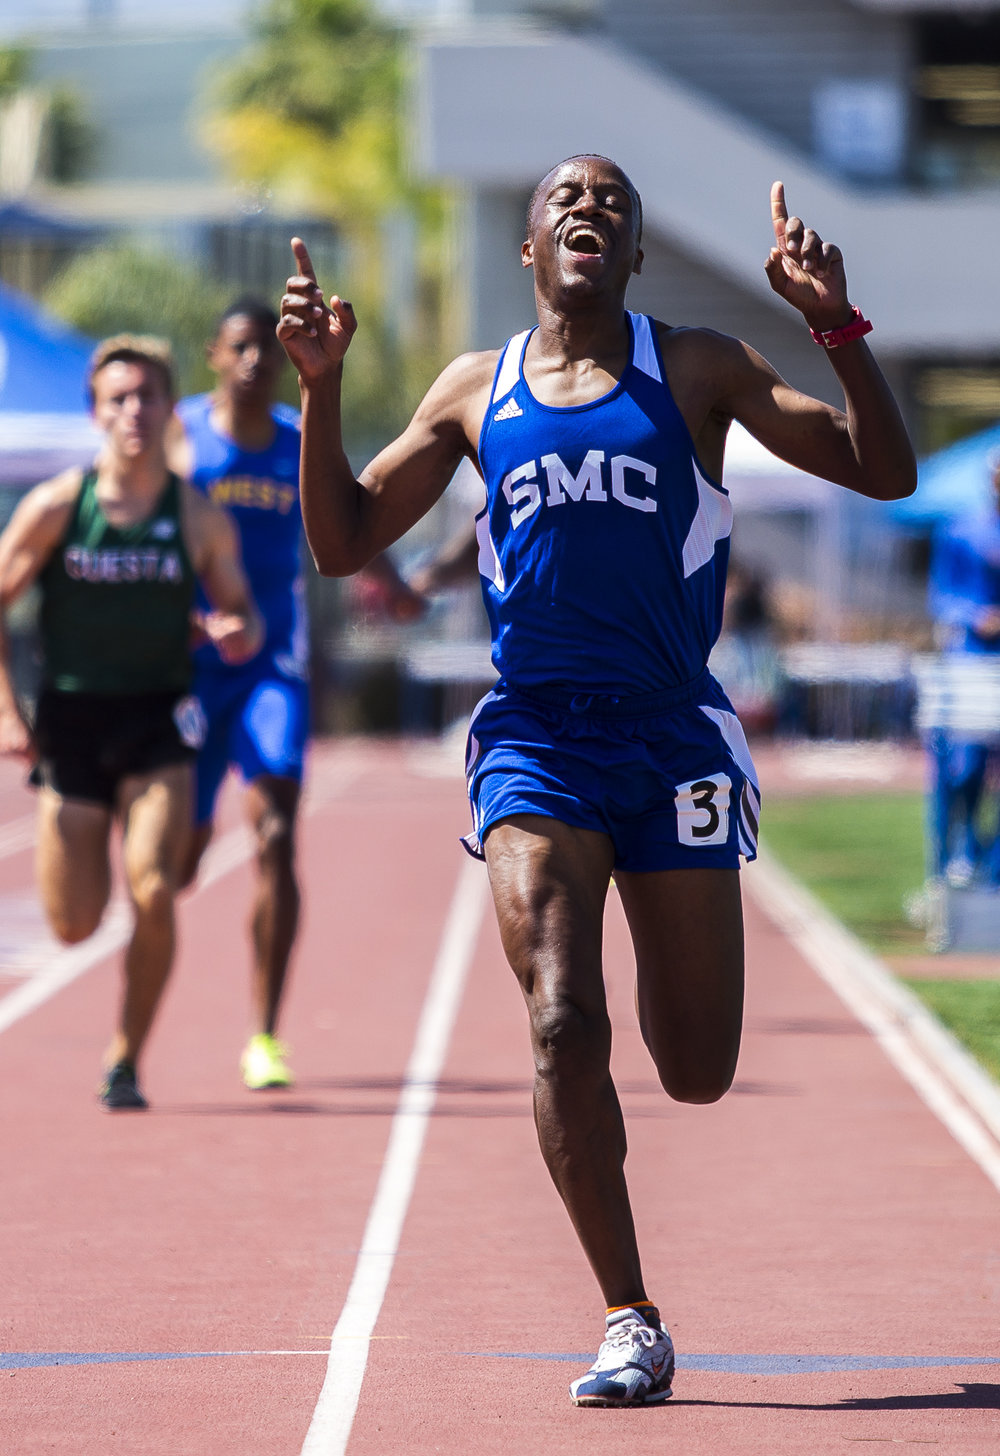 Santa Monica College (SMC) student athlete Cesar Gatete points to the sky with happiness after coming in first place in the men's 800 meter  event during the Track and Field Western State Championships at the SMC Corsair Stadium in Santa Monica California on Friday April 20 2018. (Matthew Martin/Corsair)